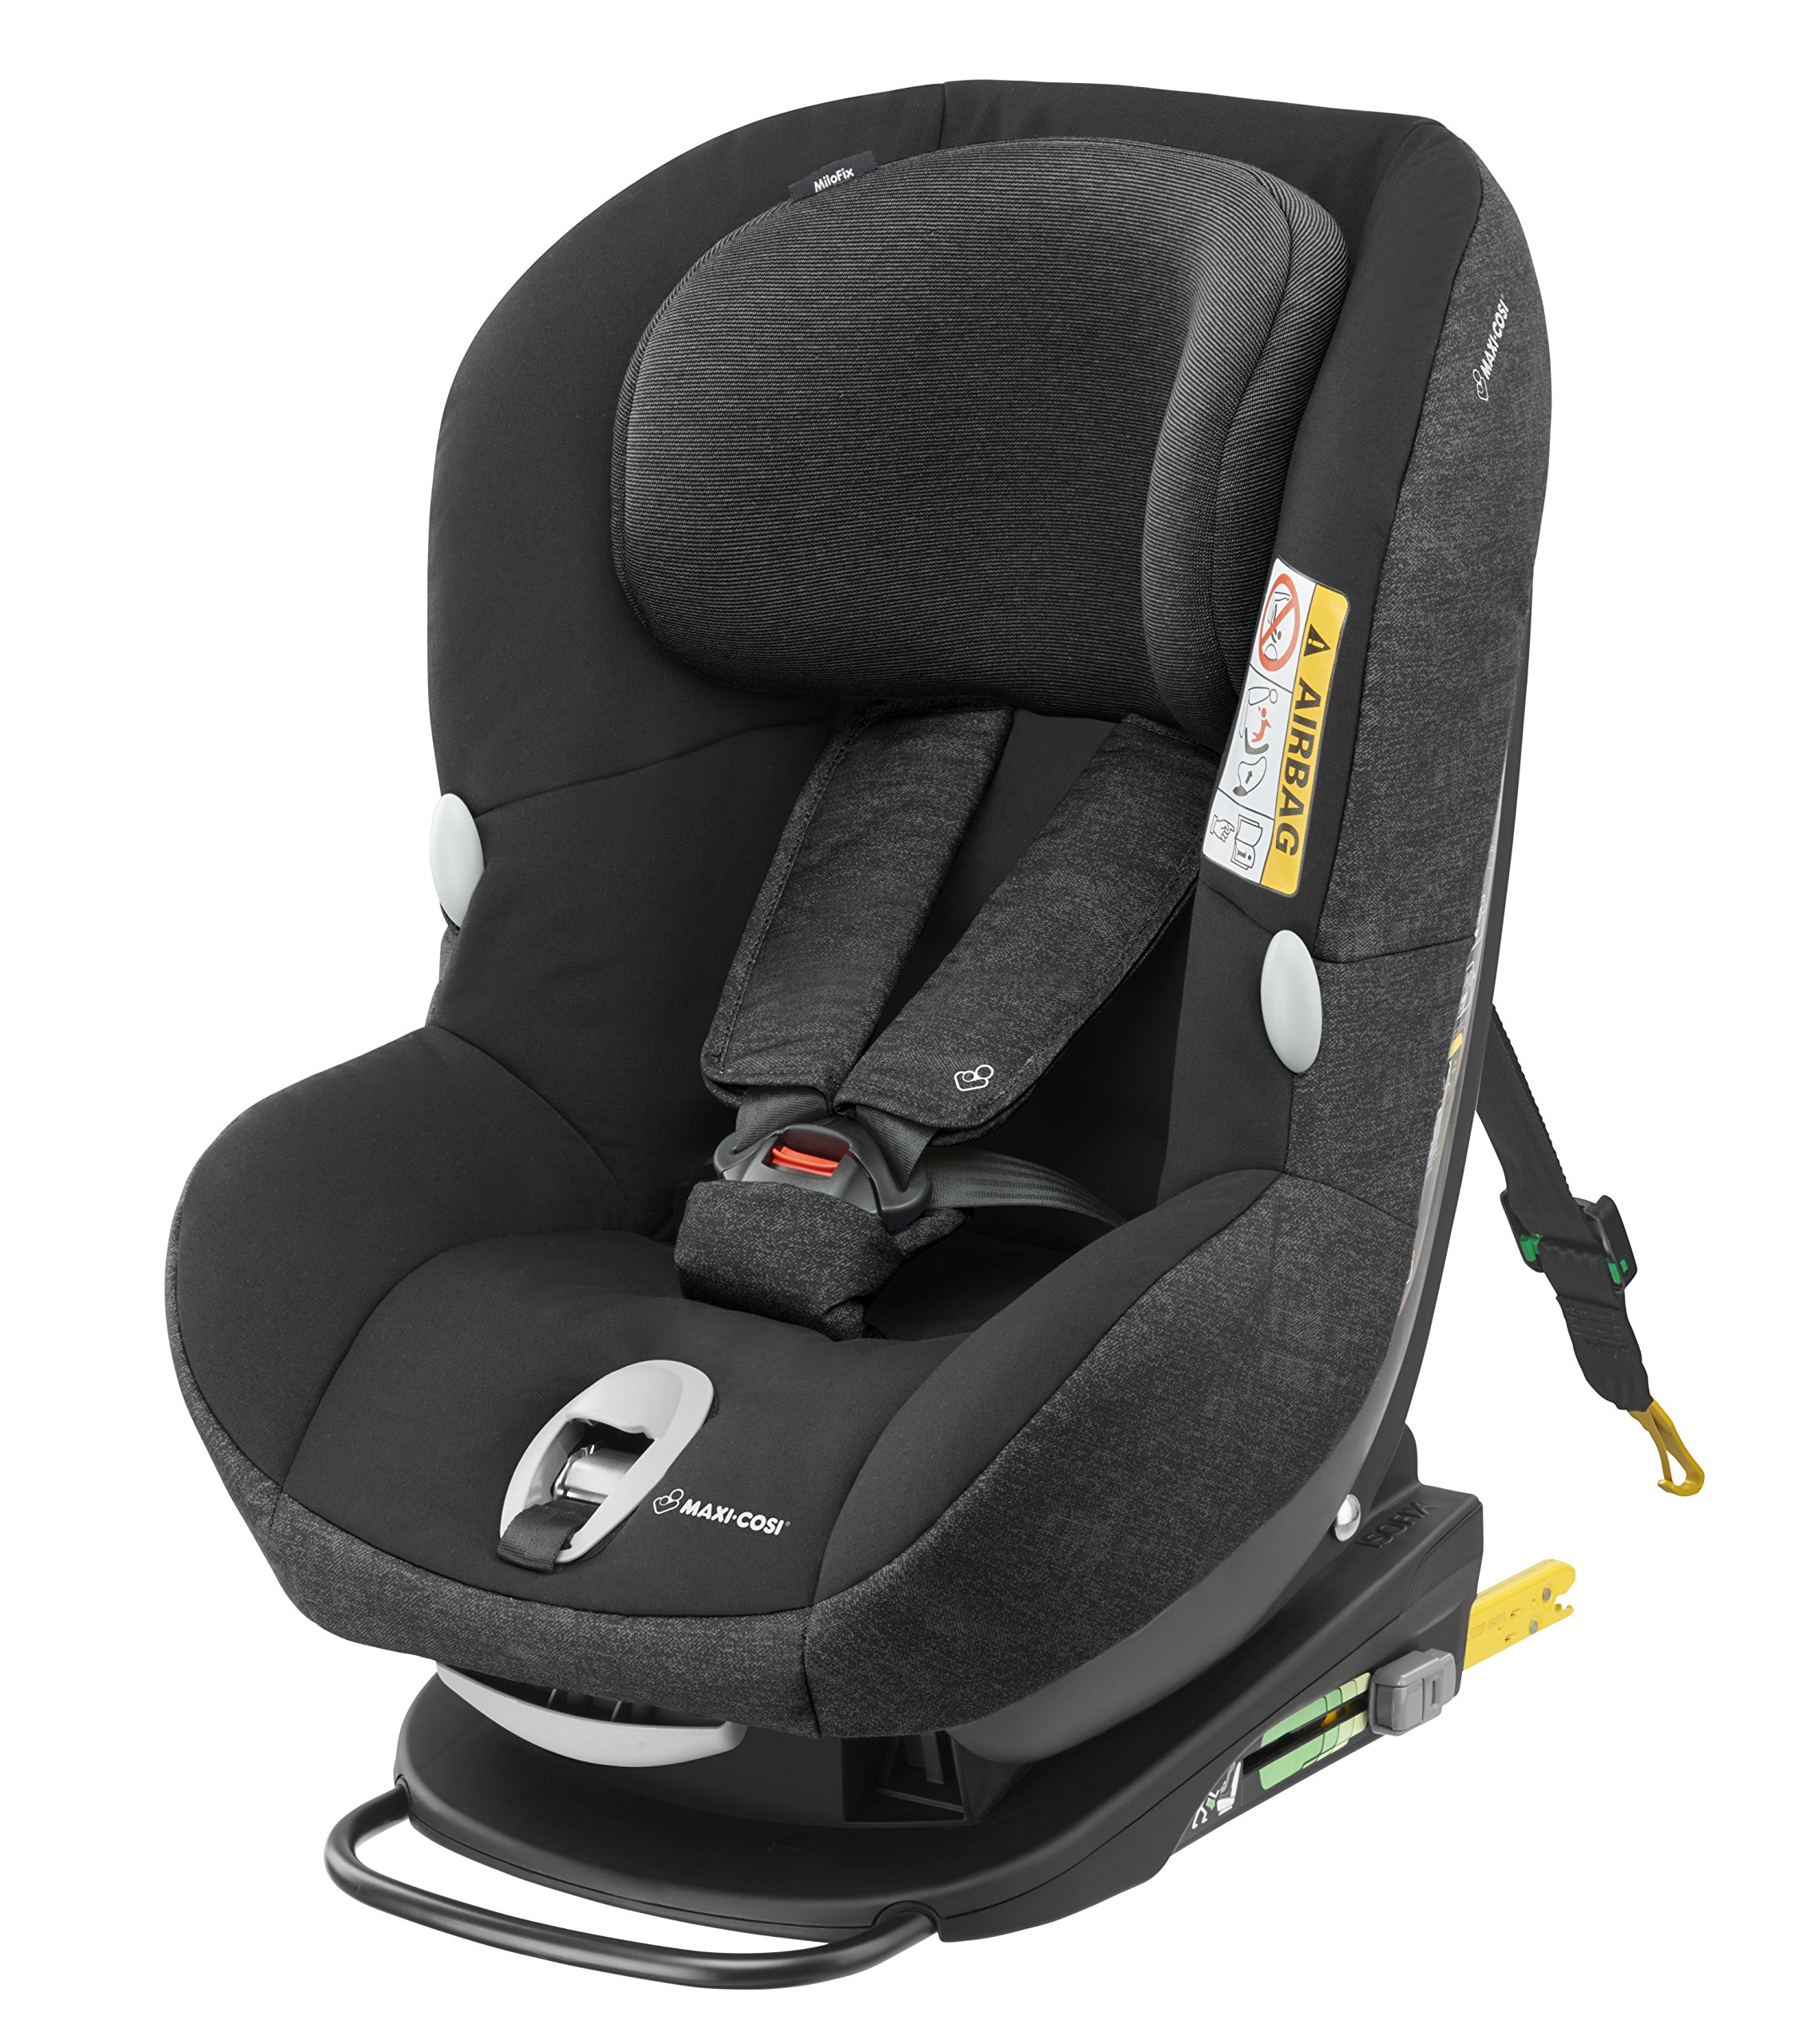 Maxi-Cosi MiloFix ISOFIX Combination Car Seat, Group 0+/1 car seat, Rear and Forward-facing, 0-4 years, 0-18 kg, Nomad Black Maxi-Cosi Rear and forward facing group 0+/1 car seat, suitable from birth to 18 kg (birth to 4 years) i-Size car seat, extended rearward-facing travel up until 18 months Padded seat and angled base provide additional leg room in rear-facing position 1